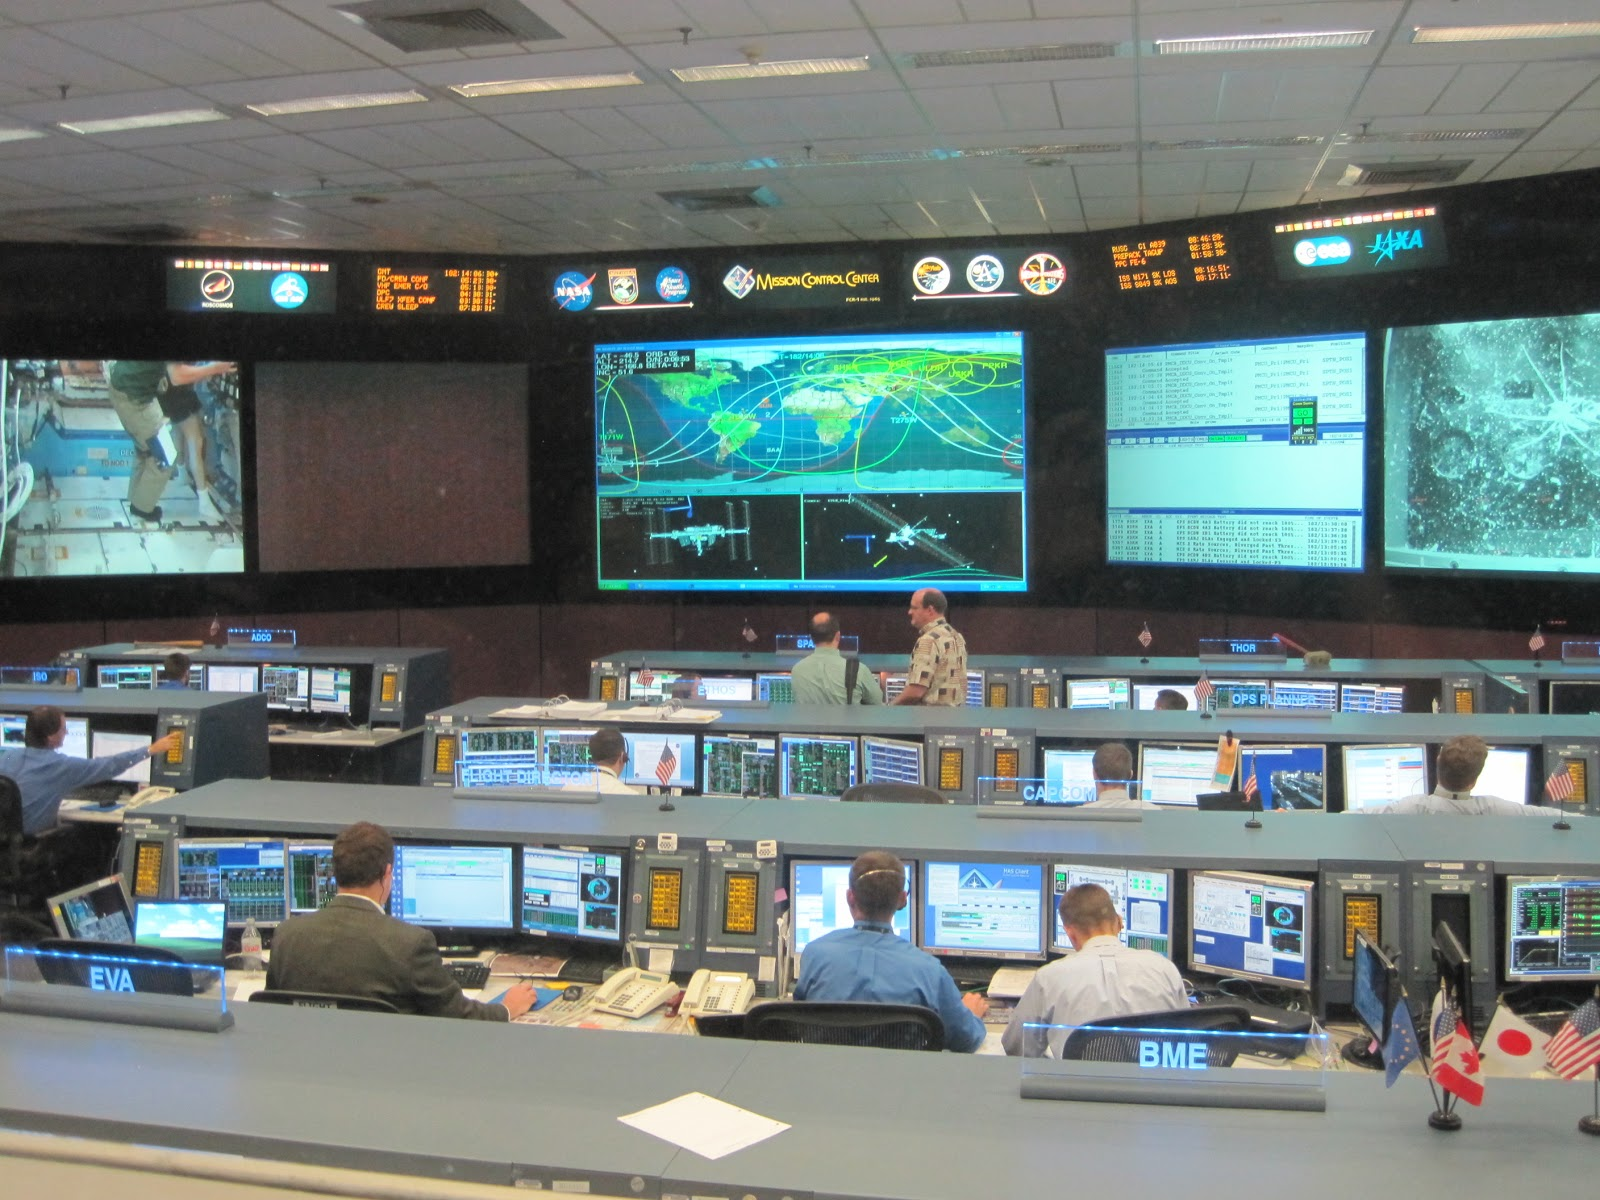 Space Mission Control Center - Pics about space